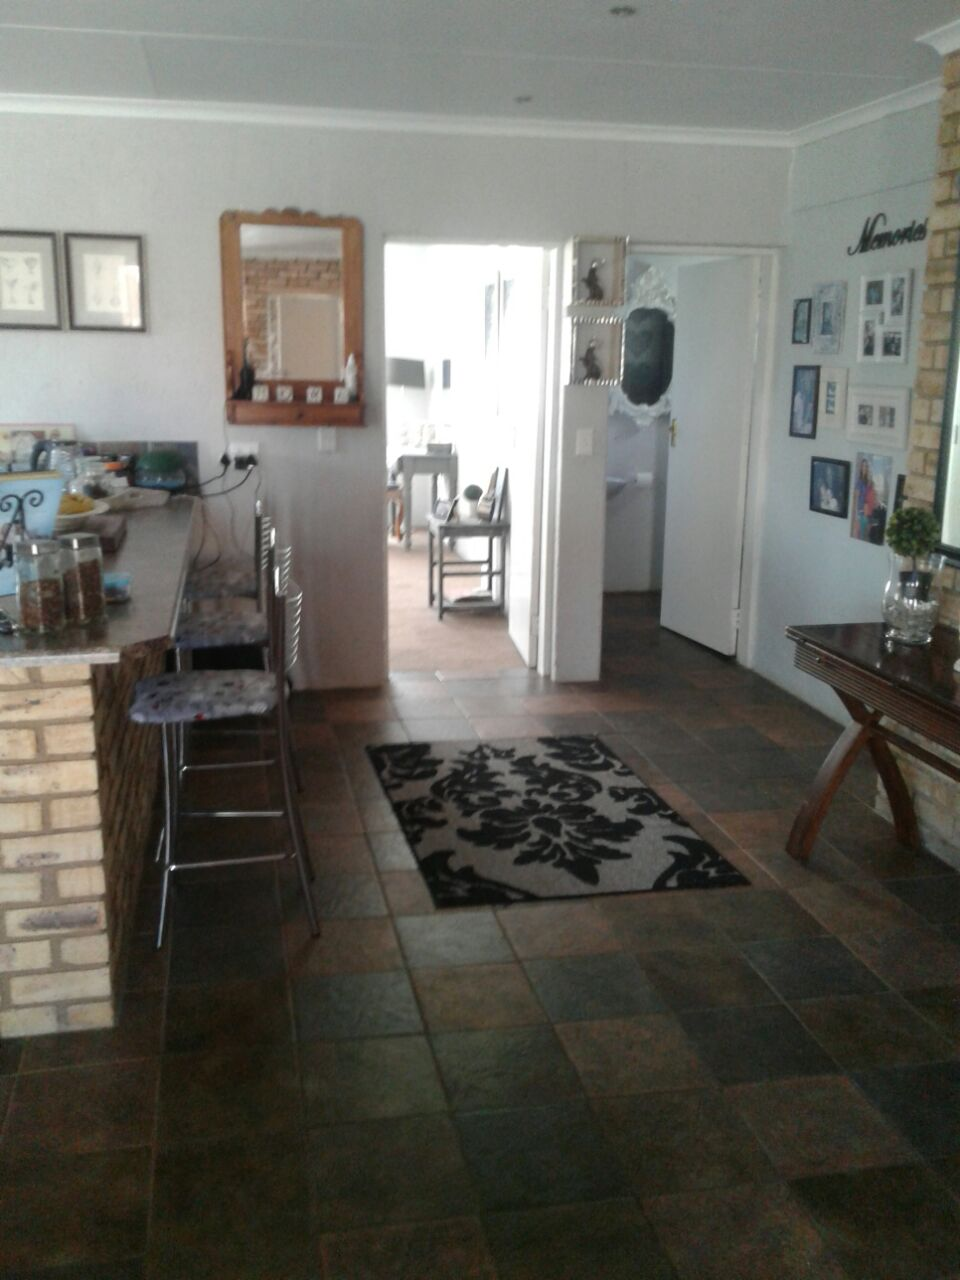 Krugersdorp North. Beautiful Spacious 2 Bedroom HOUSE to LET. ONLY R 6500. Safe Central Dogs Welcome. New.